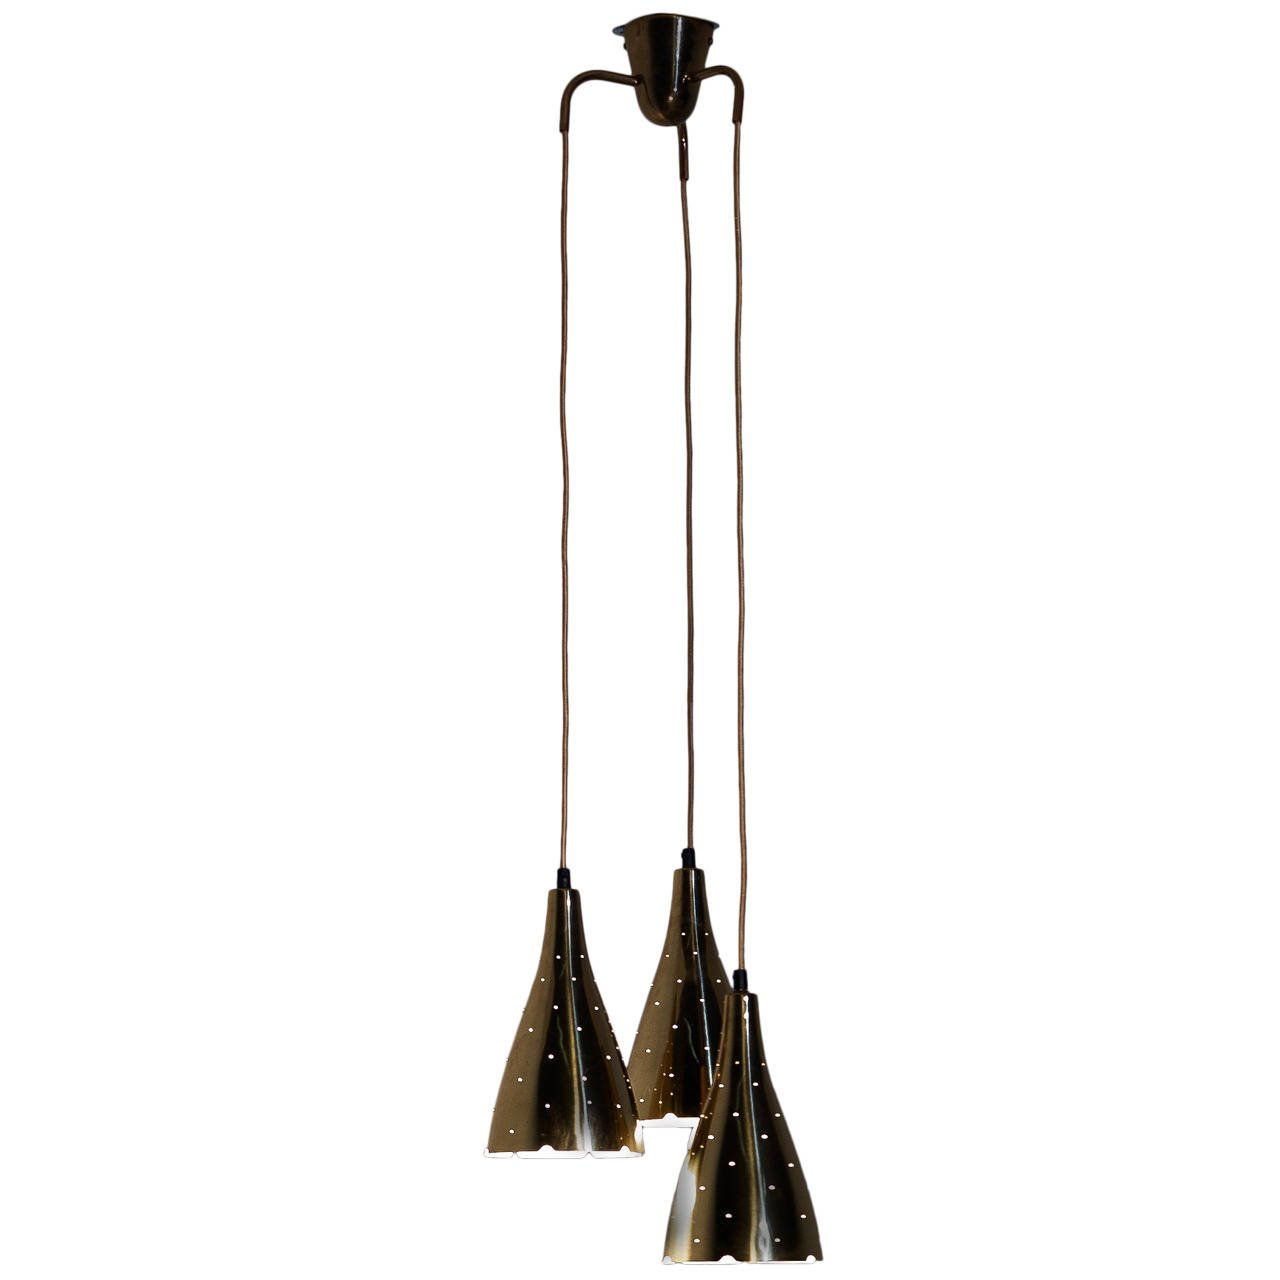 Paavo Tynell Pendant Lamp for Idman, Model 10130 / 3, 1950s - The Exchange Int